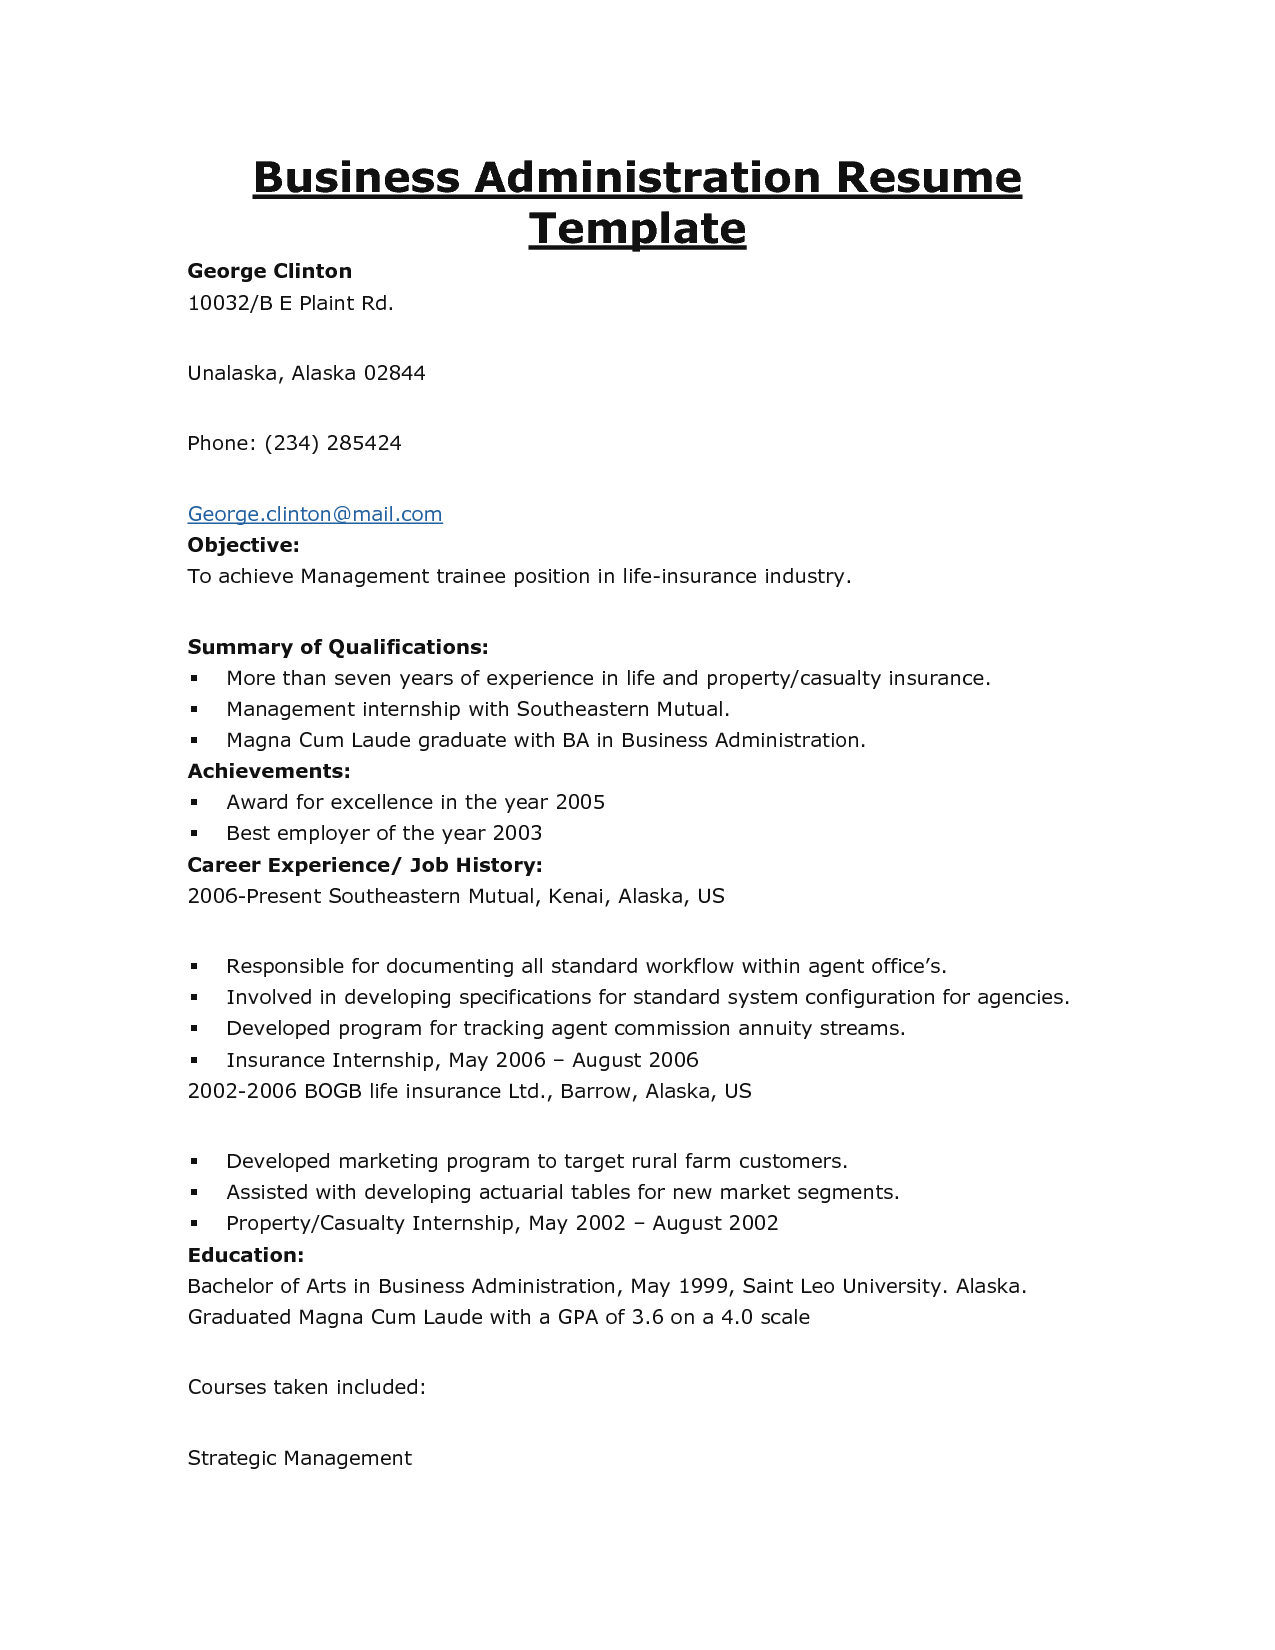 Resume Templates For Management Positions Resume Examples Business Management #business #examples #management .